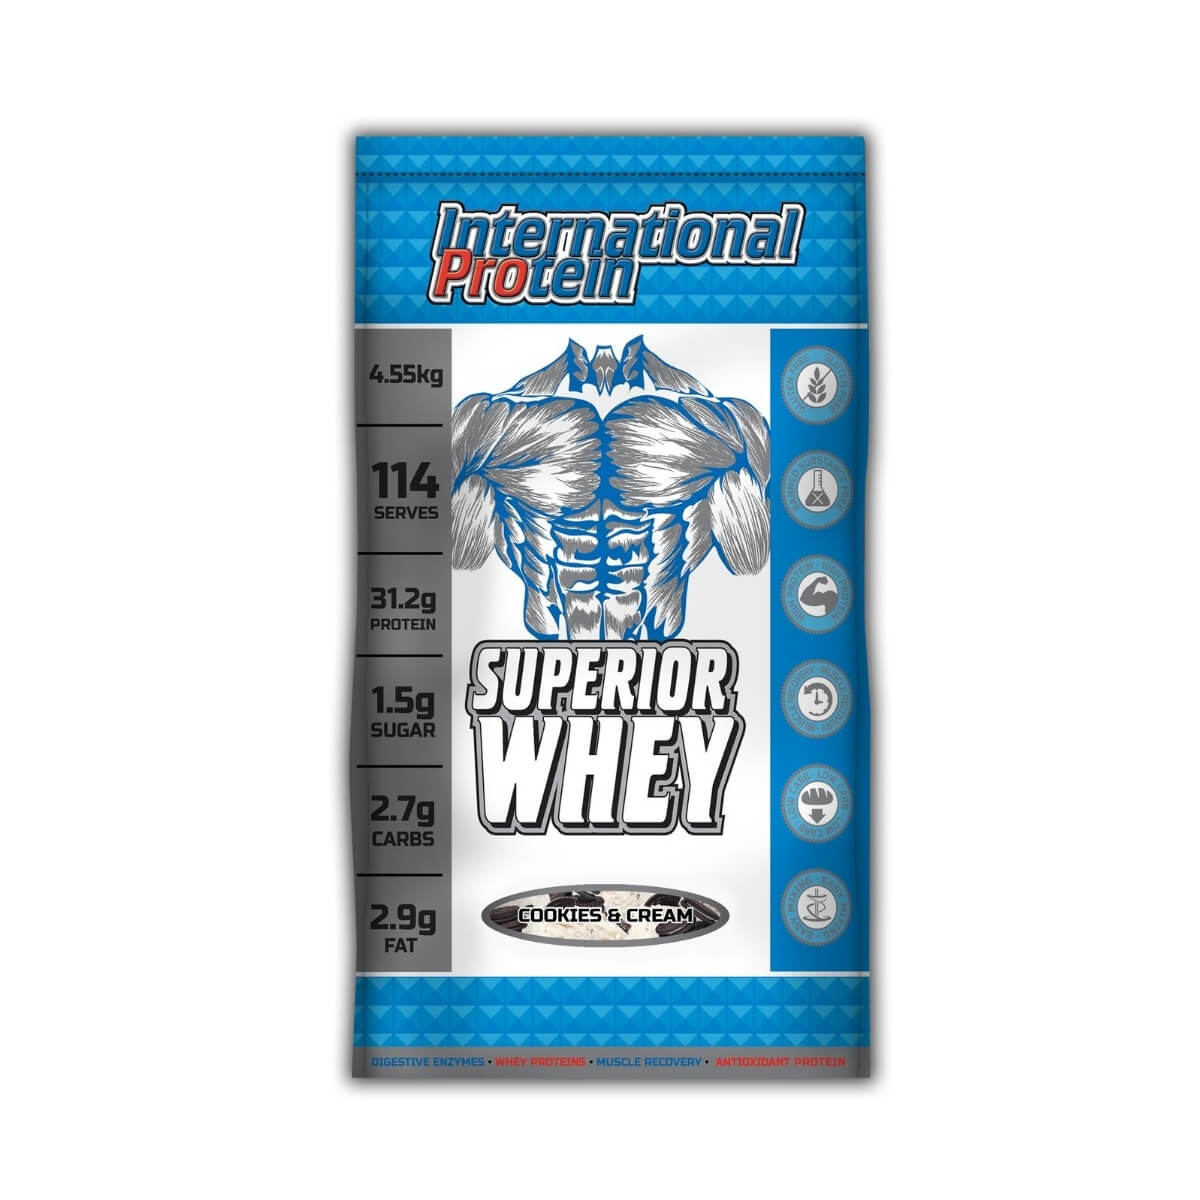 International protein Superior Whey 10lbs